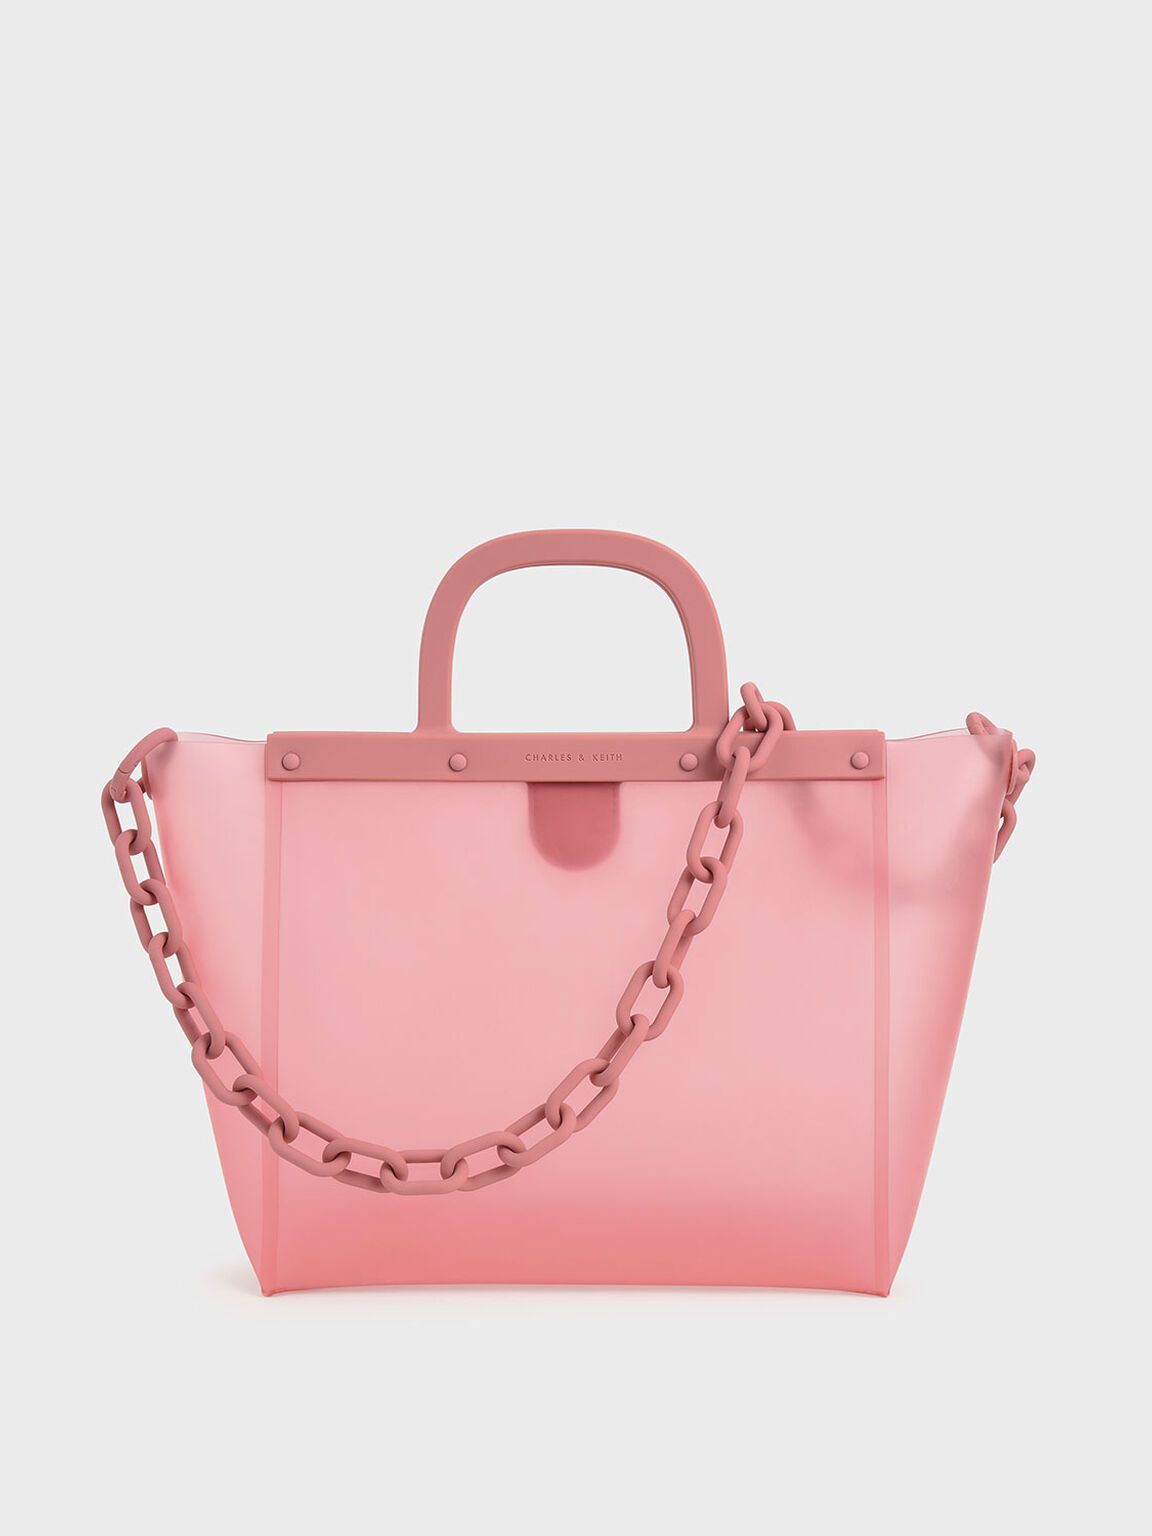 Large See-Through Tote Bag, Pink, hi-res